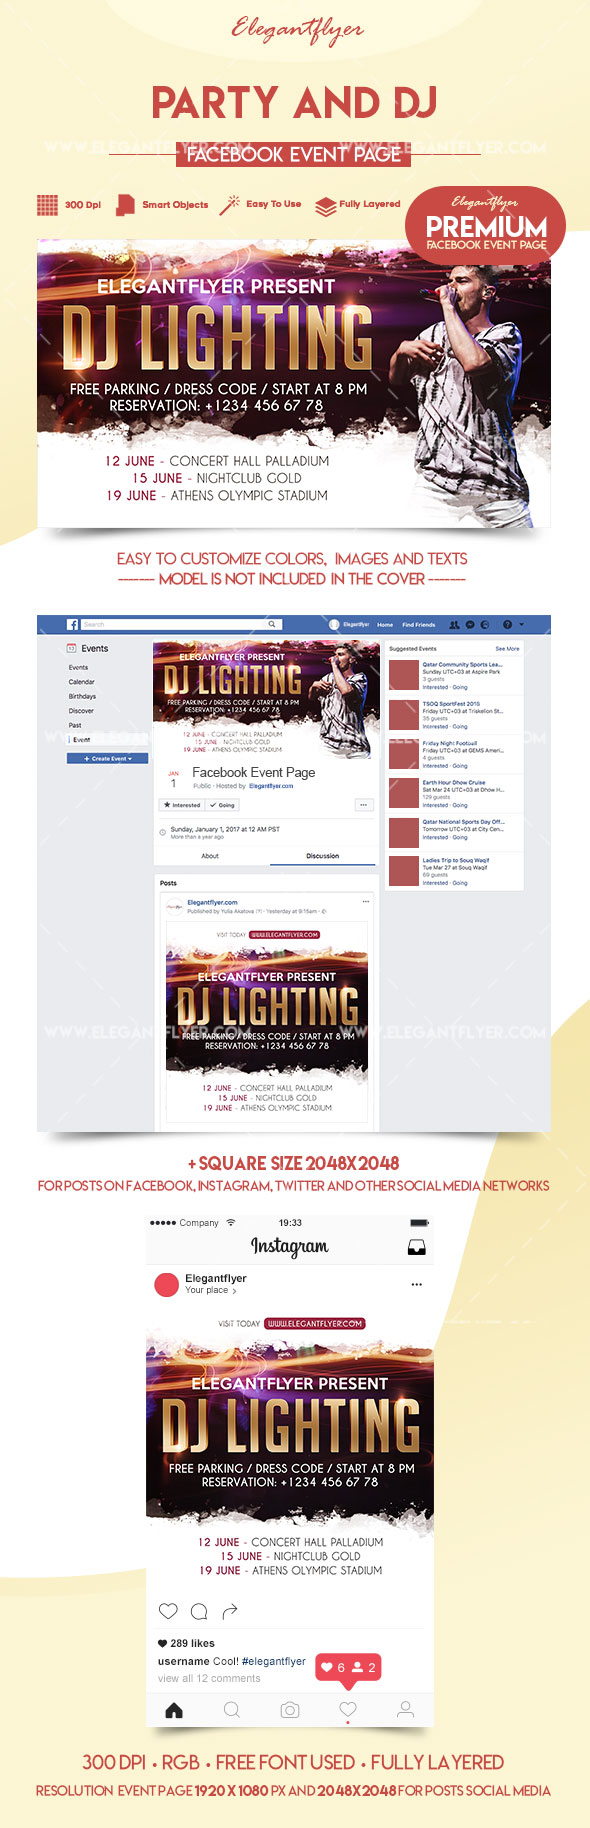 Party and DJ – Premium Facebook Event Page